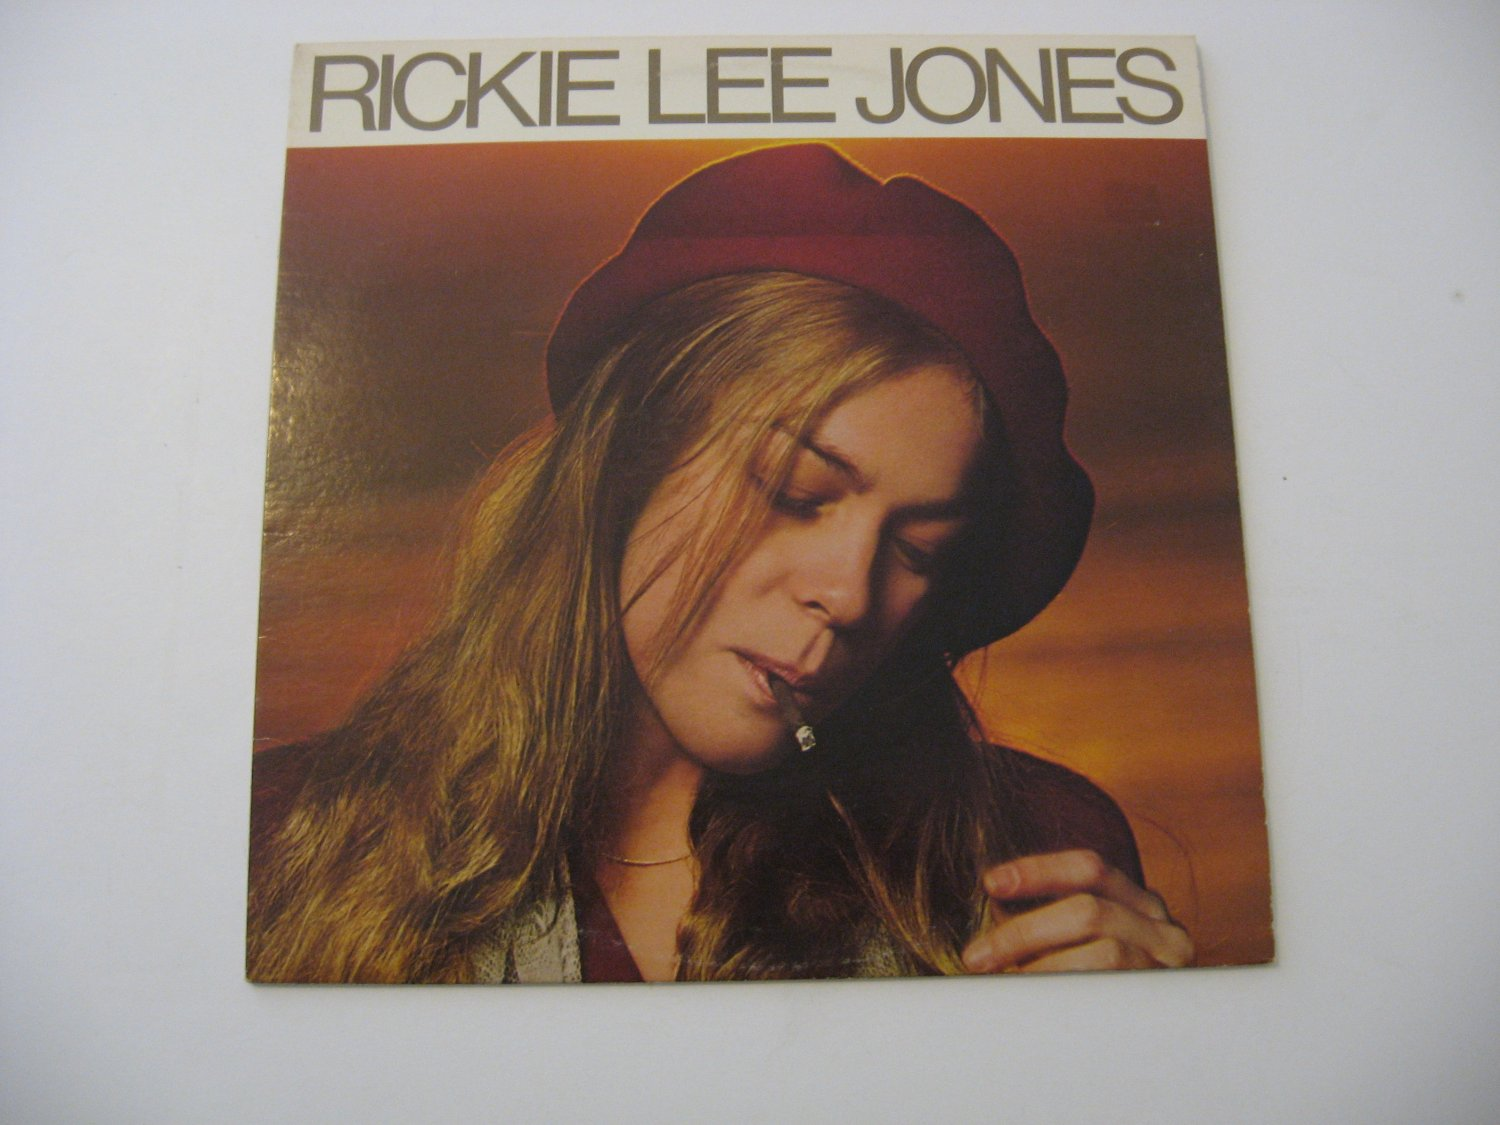 Rickie Lee Jones  -  Ricki Lee Jones - Circa 1979